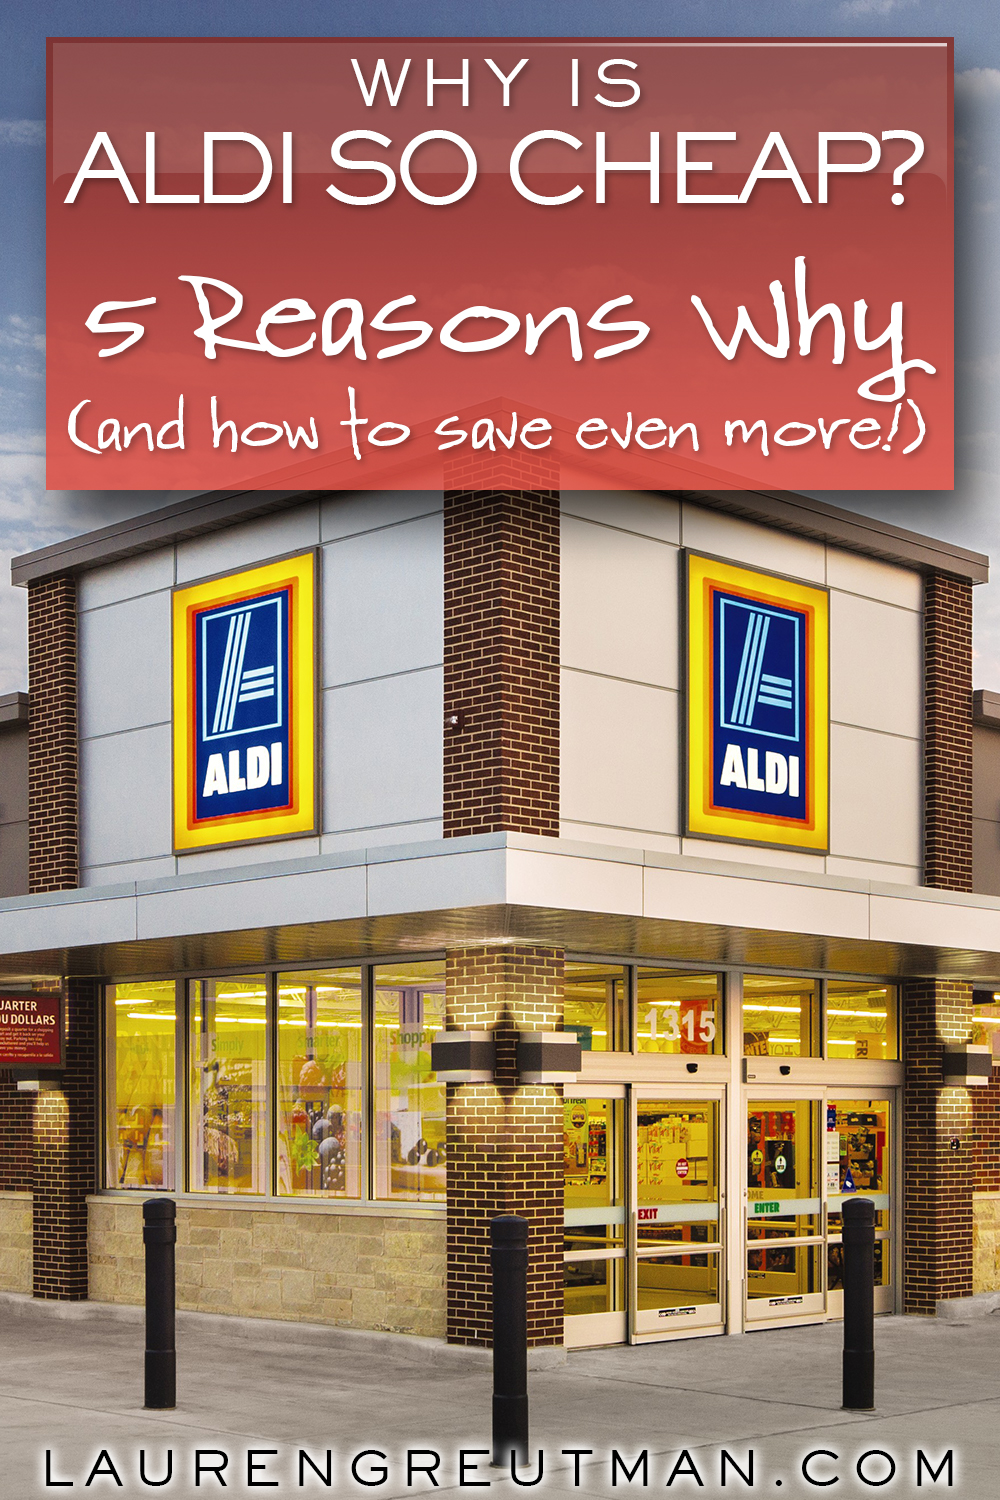 Ever wonder why ALDI is so cheap? Here are the 5 reasons why, and some of these will SHOCK you. Plus, how to save even more!